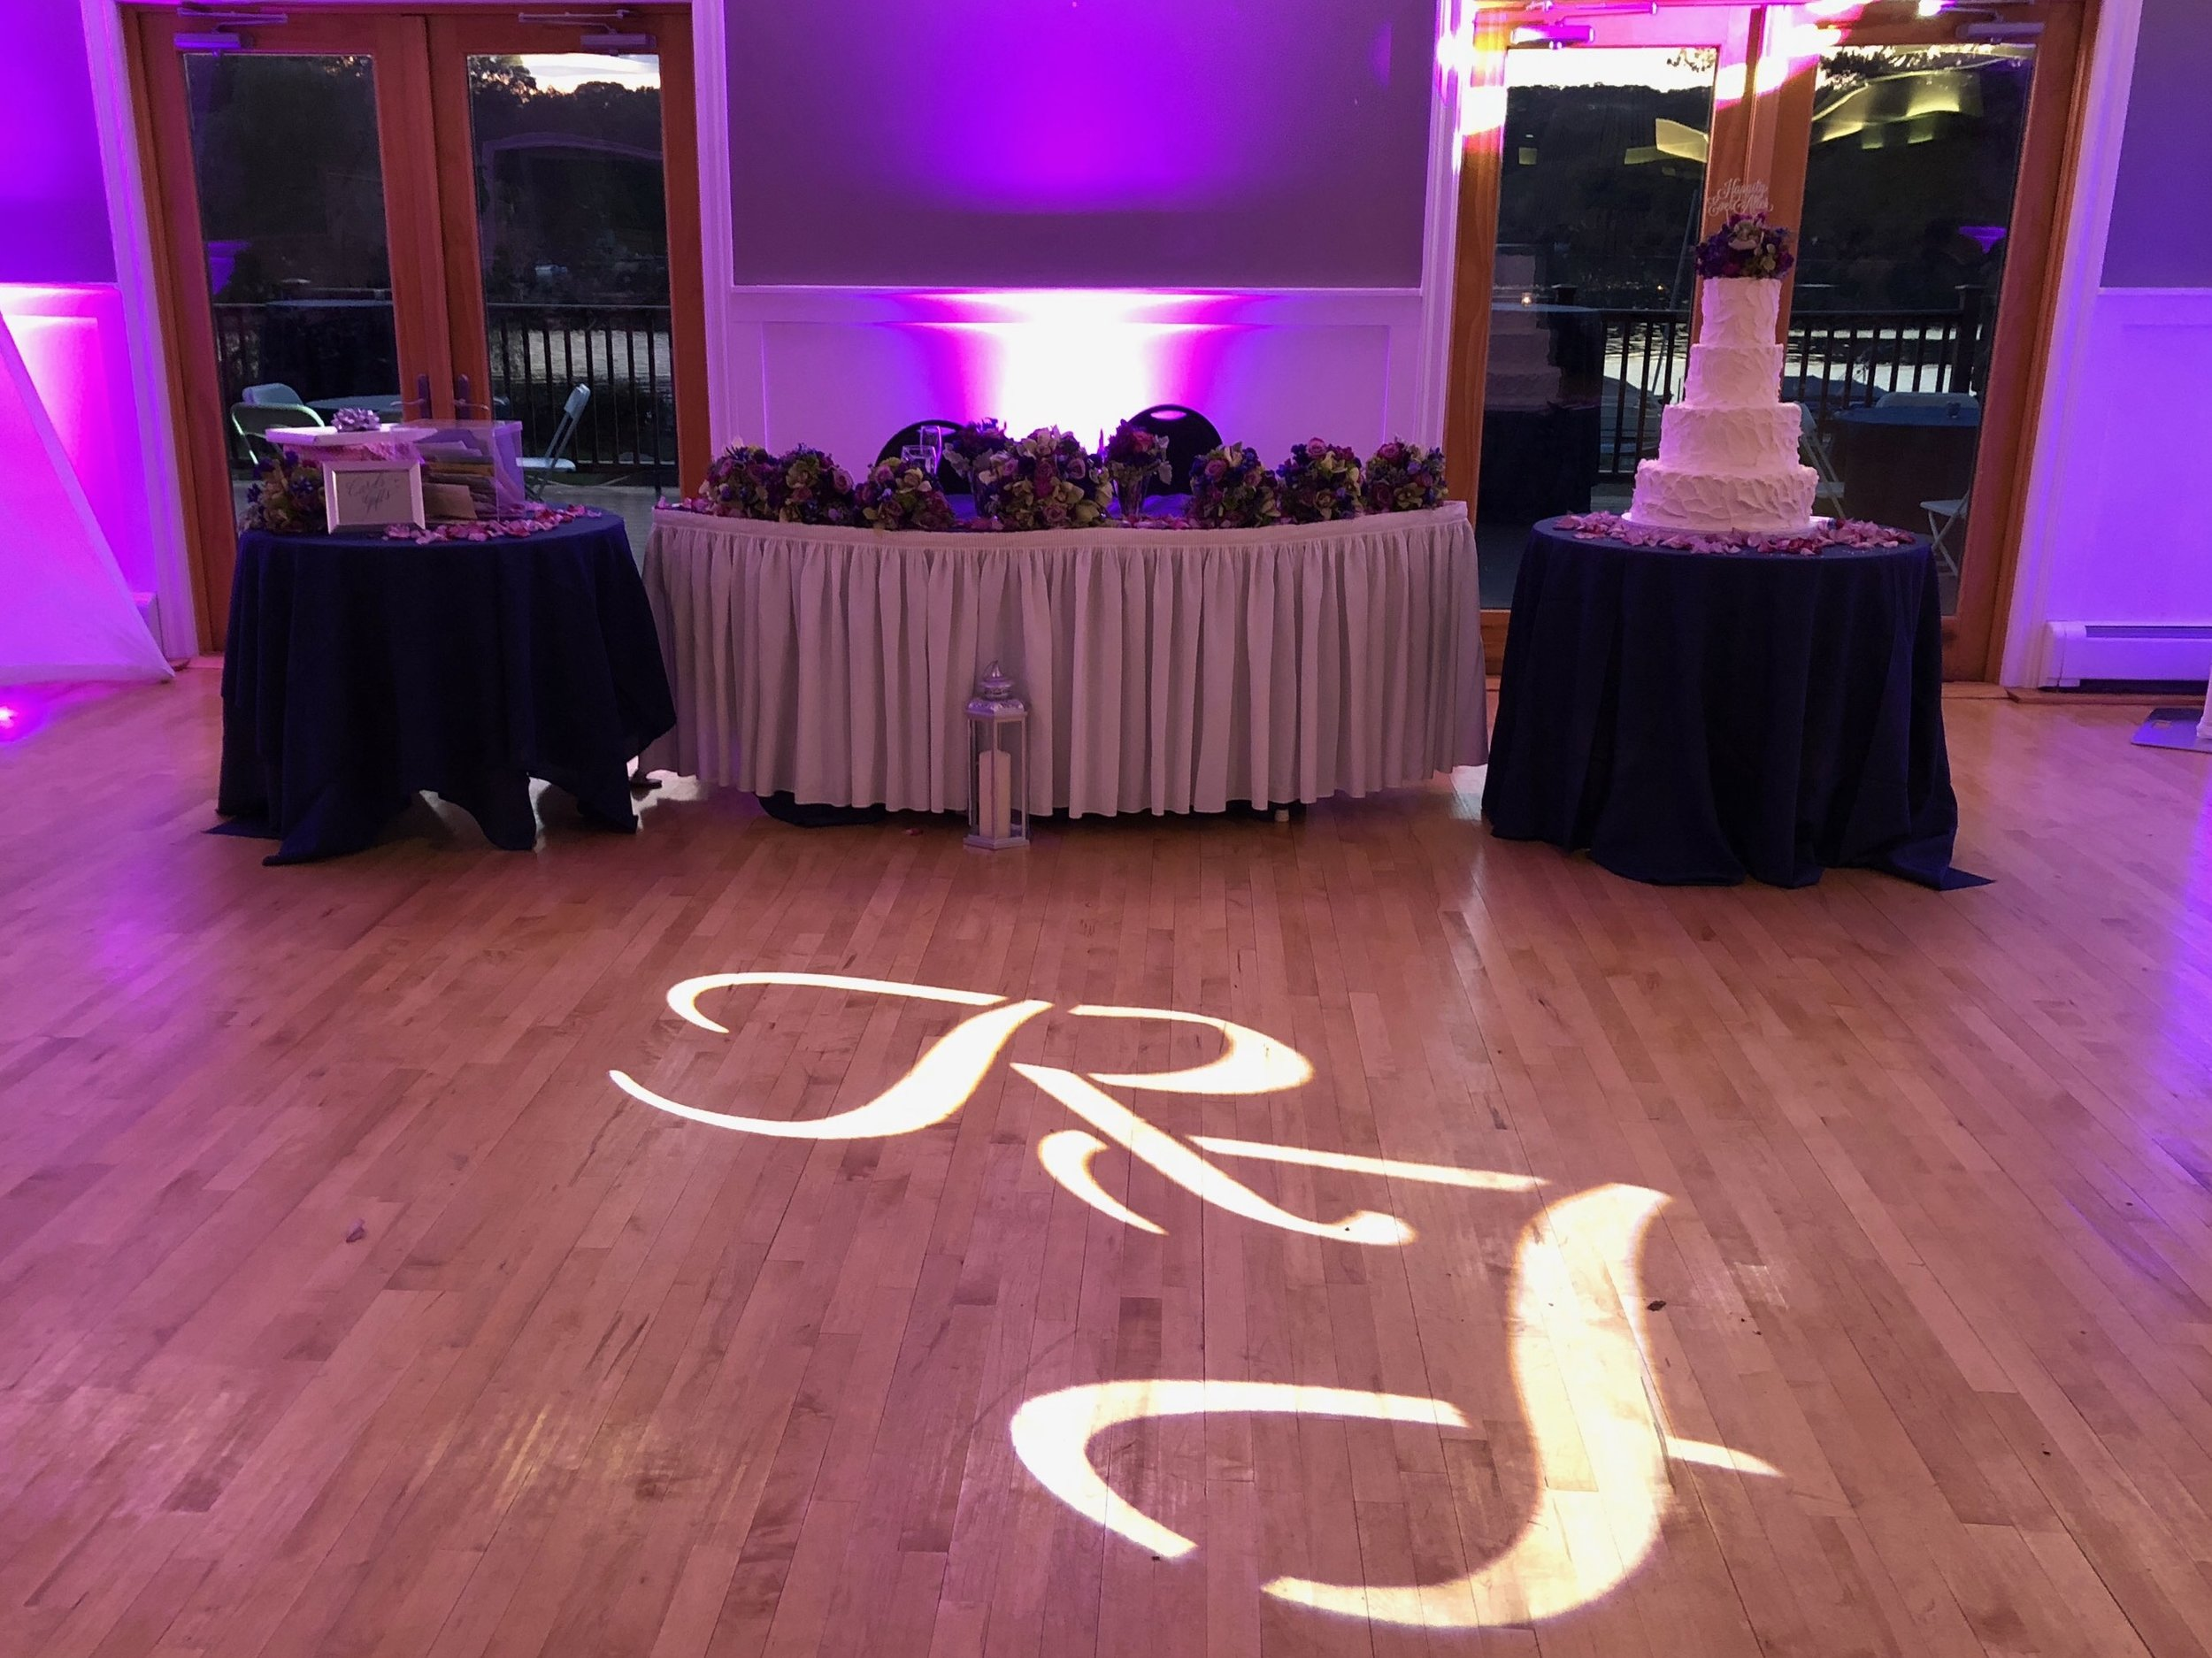 GOBO Projection - Add a personal touch to your event with a custom GOBO! Have your name or monogram displayed in lights on any wall or dance floor!